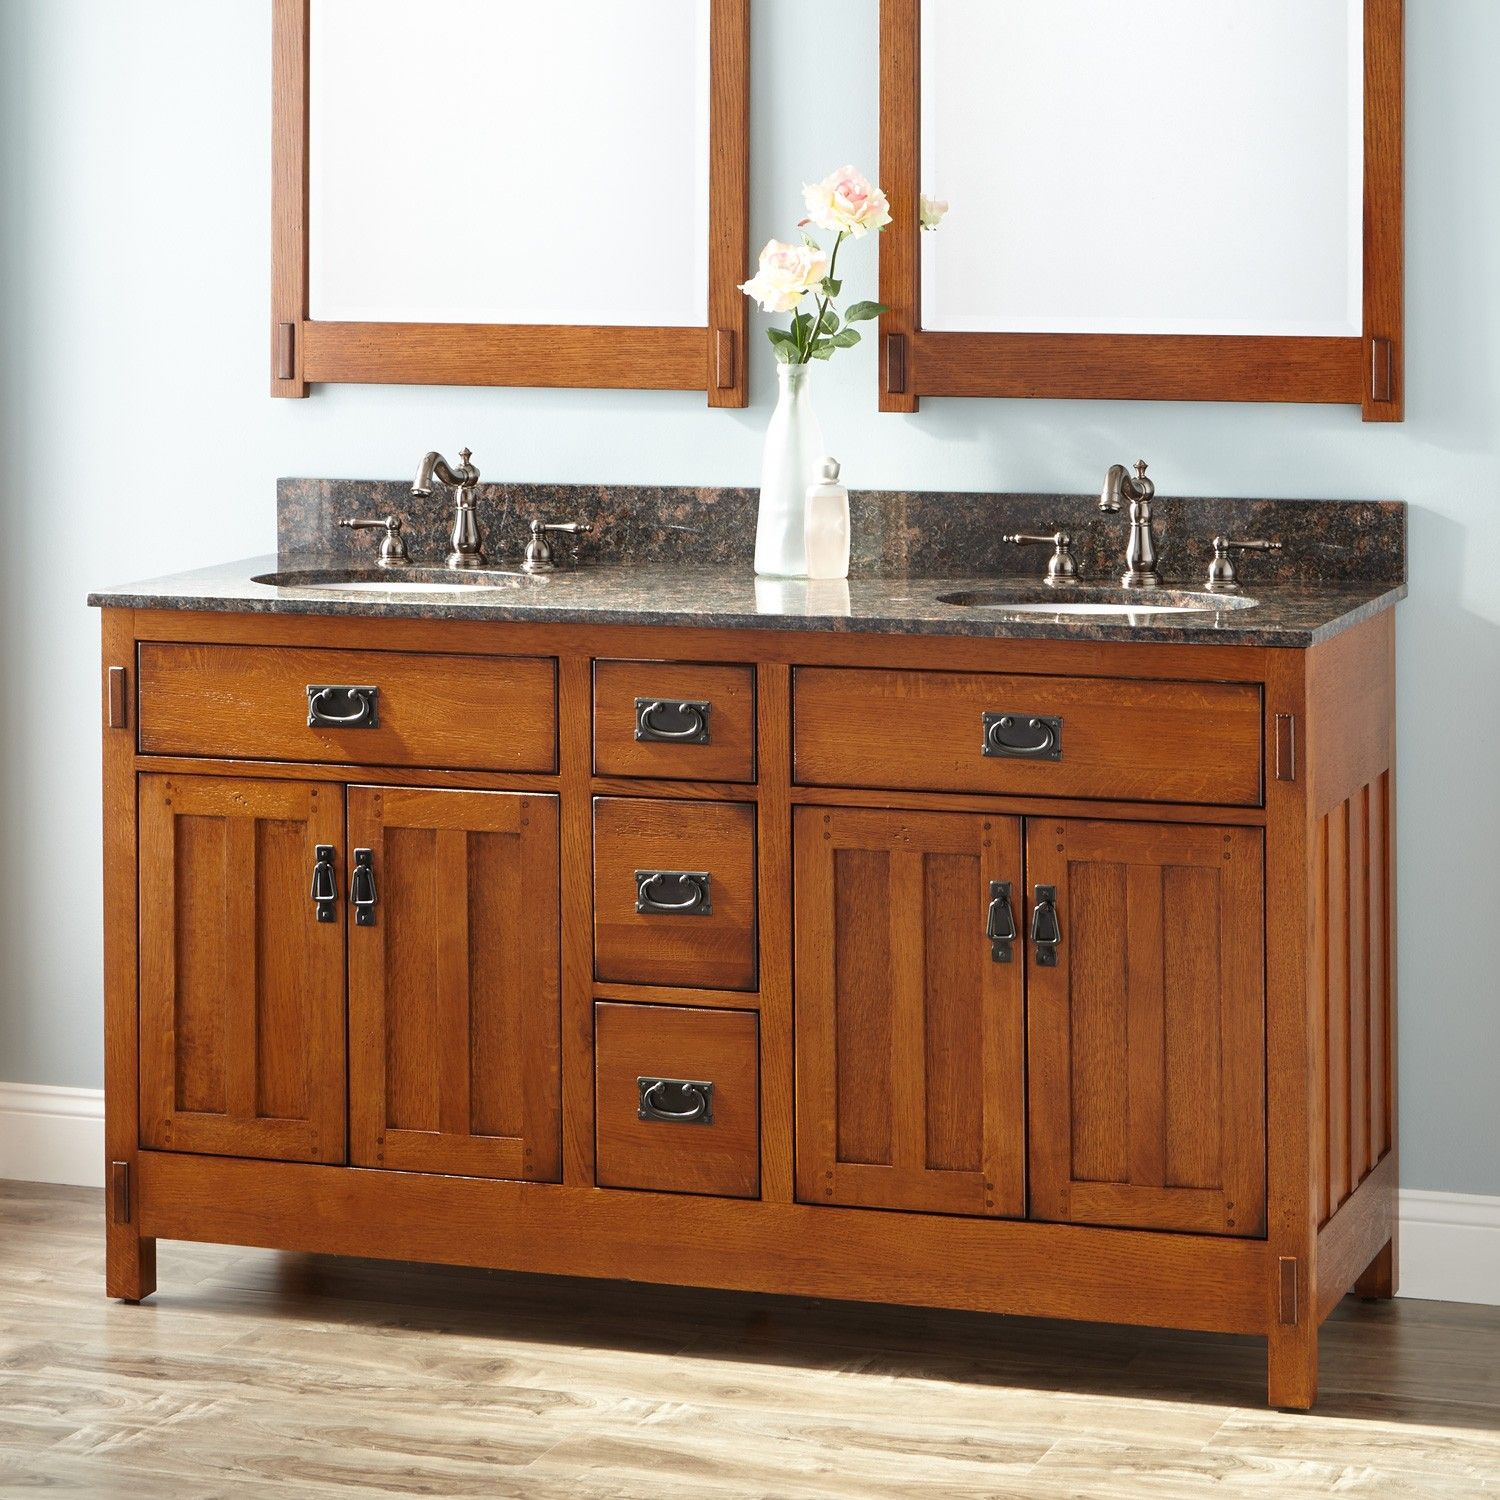 "60"" american craftsman double vanity for undermount sinks - rustic"